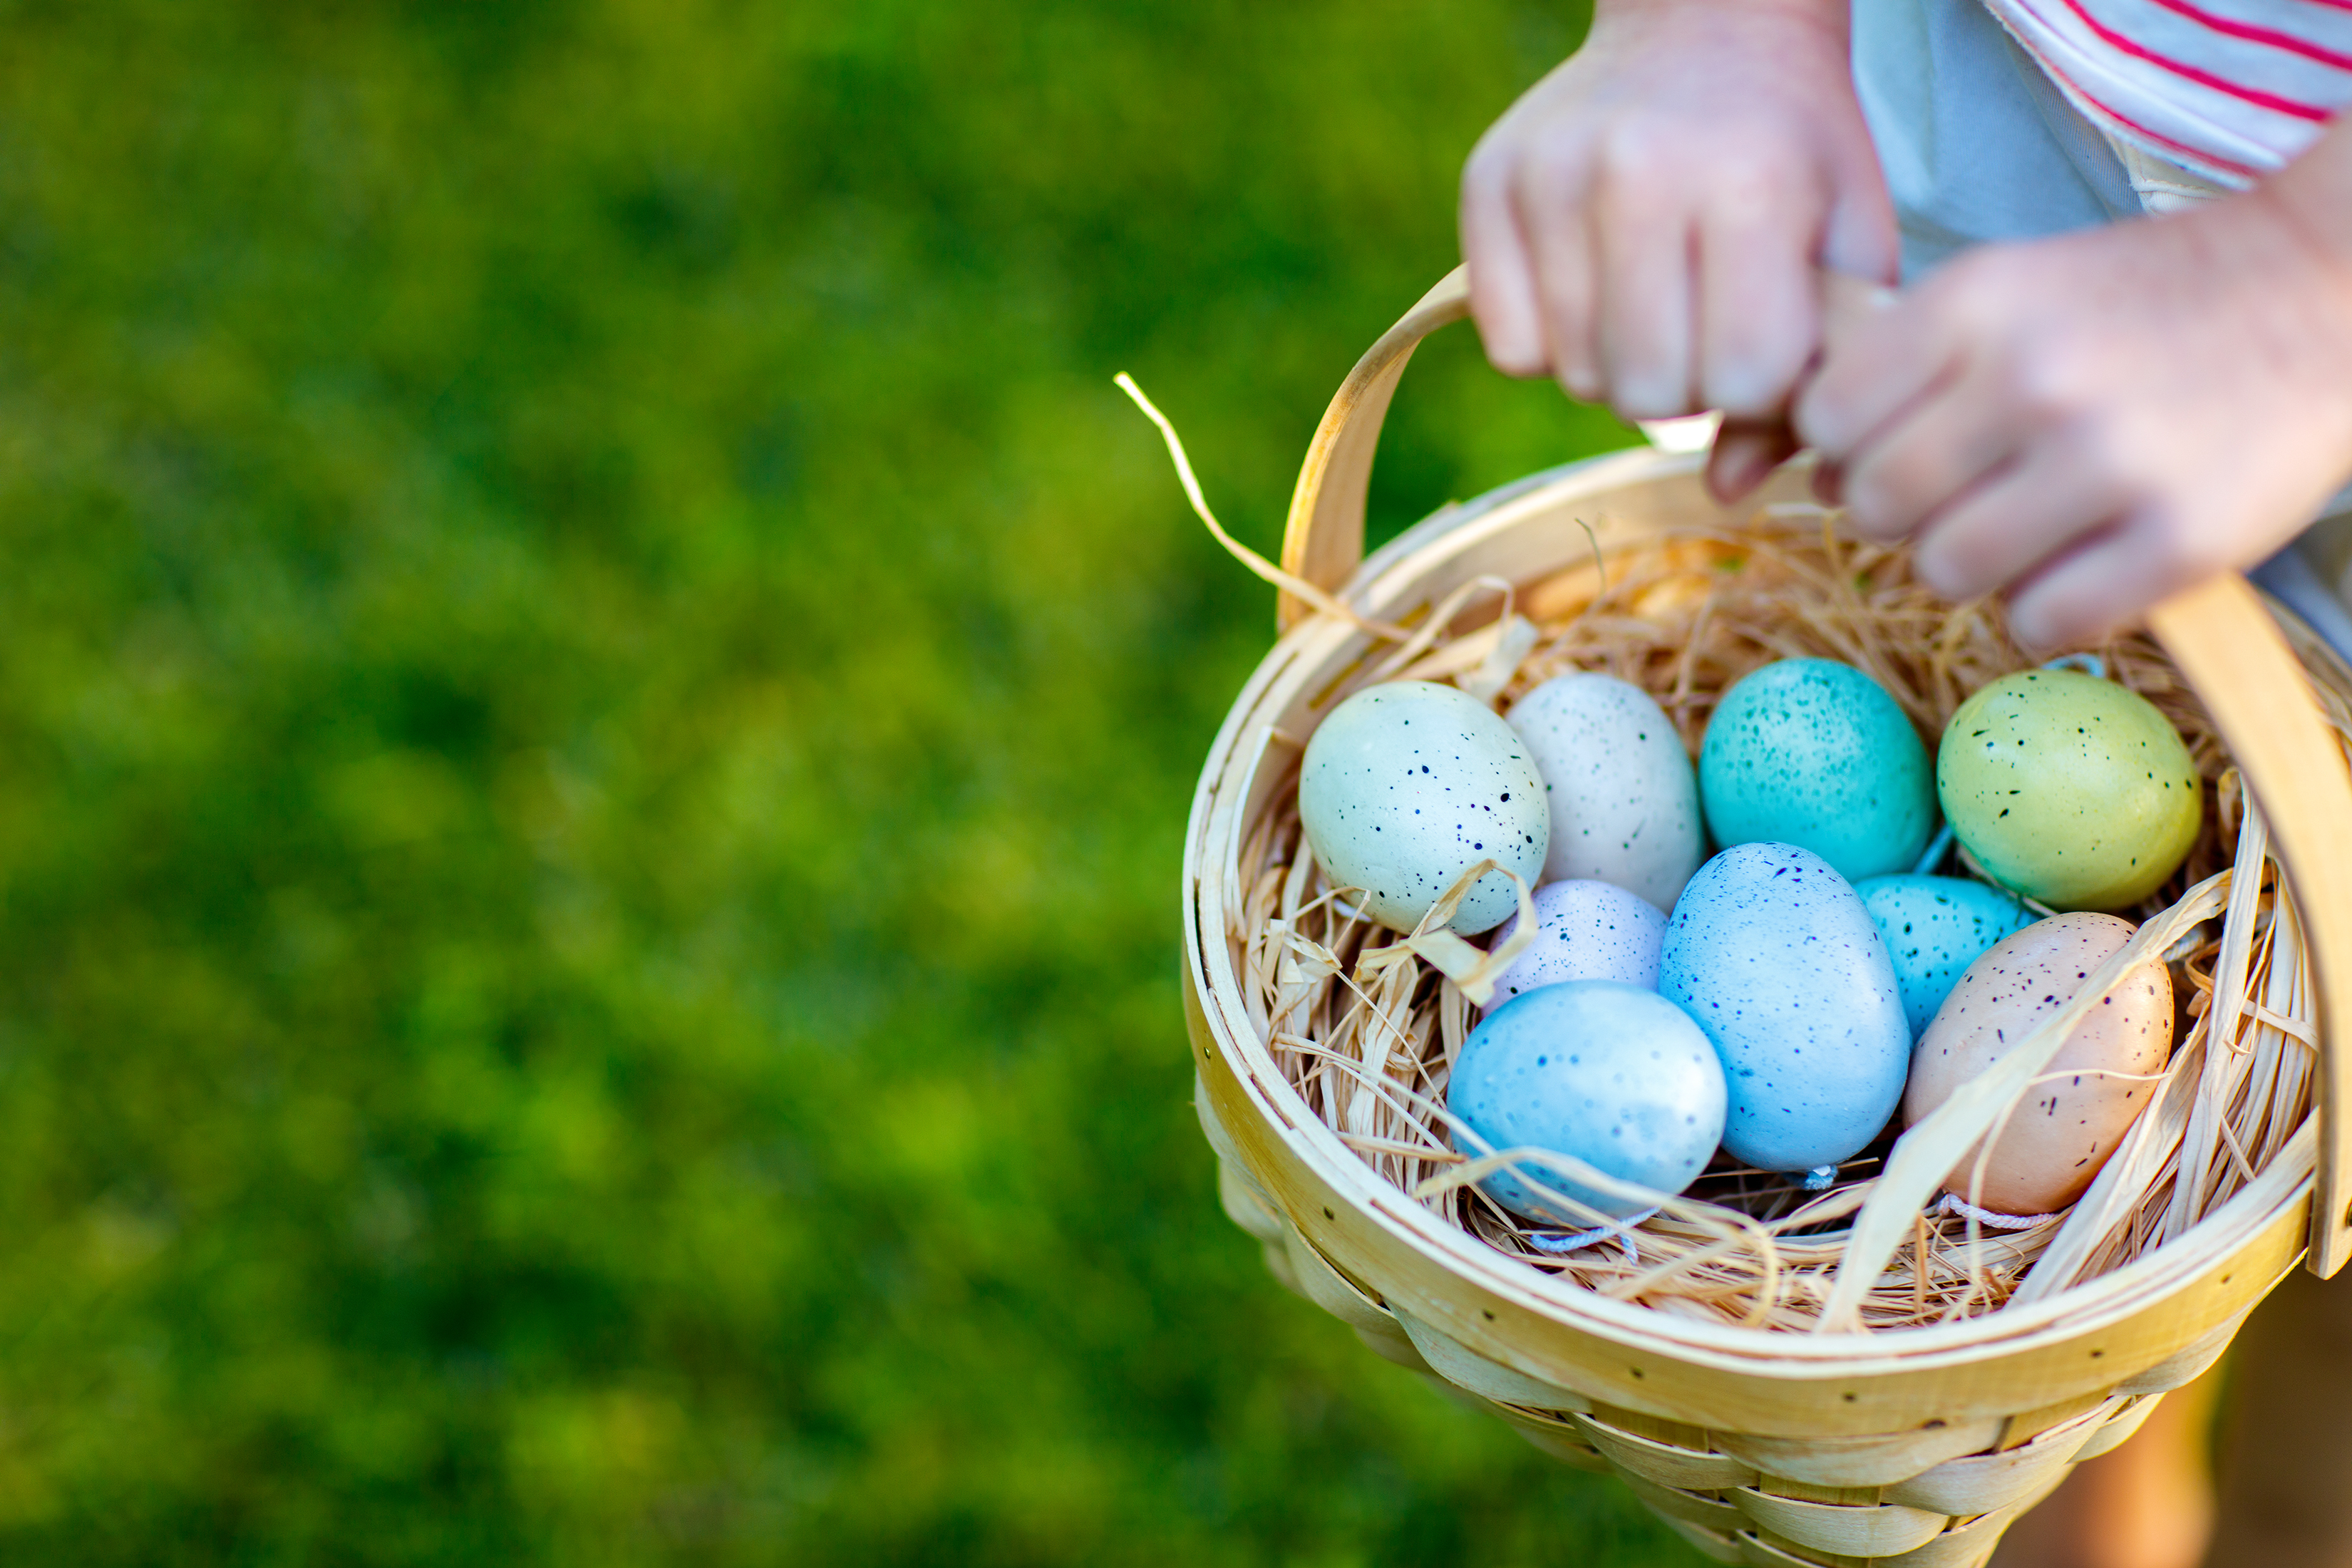 painted eggs in a basket for Easter